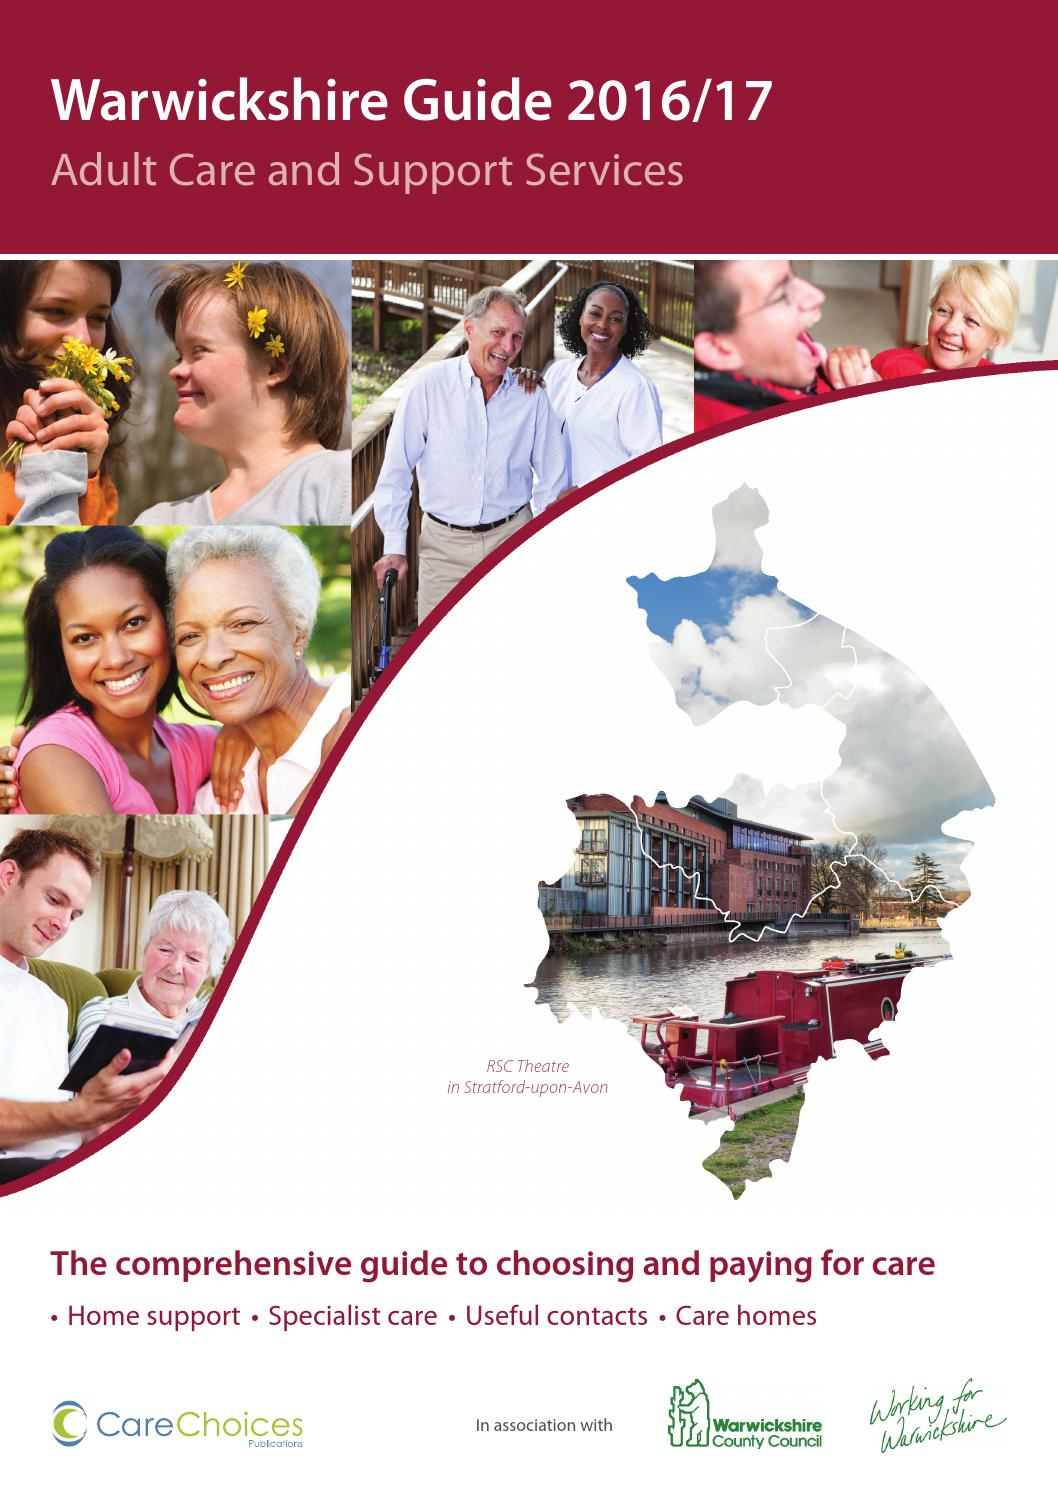 Lower meadow is a 40 capacity stratford care home that looks to take a - Warwickshire Guide 2016 17 Adult Care And Support Services By Care Choices Ltd Issuu